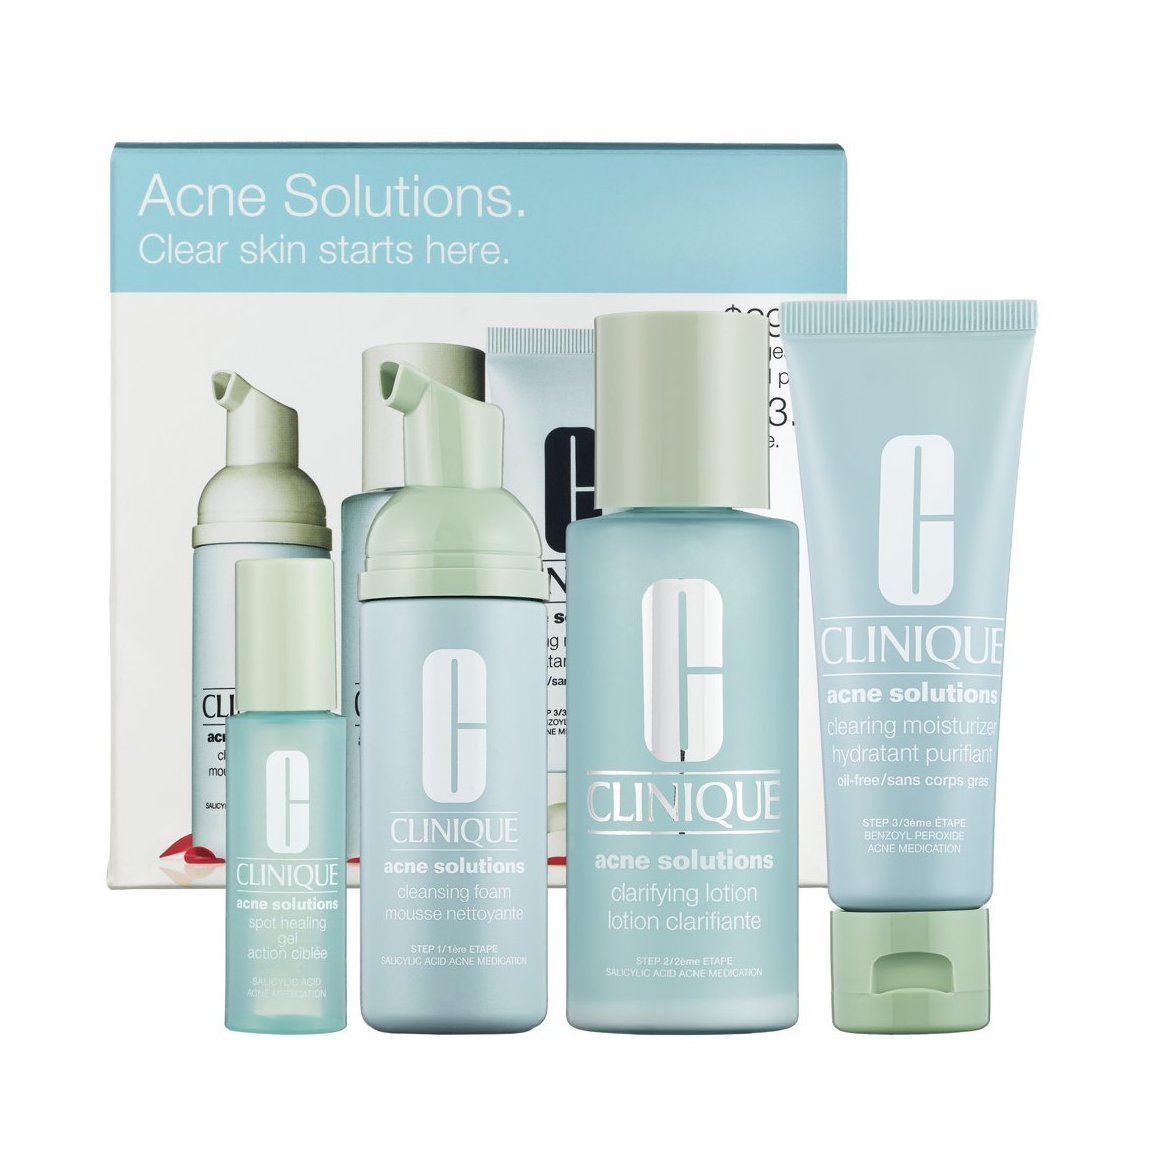 Acne Solutions Cleansing Foam by Clinique #11